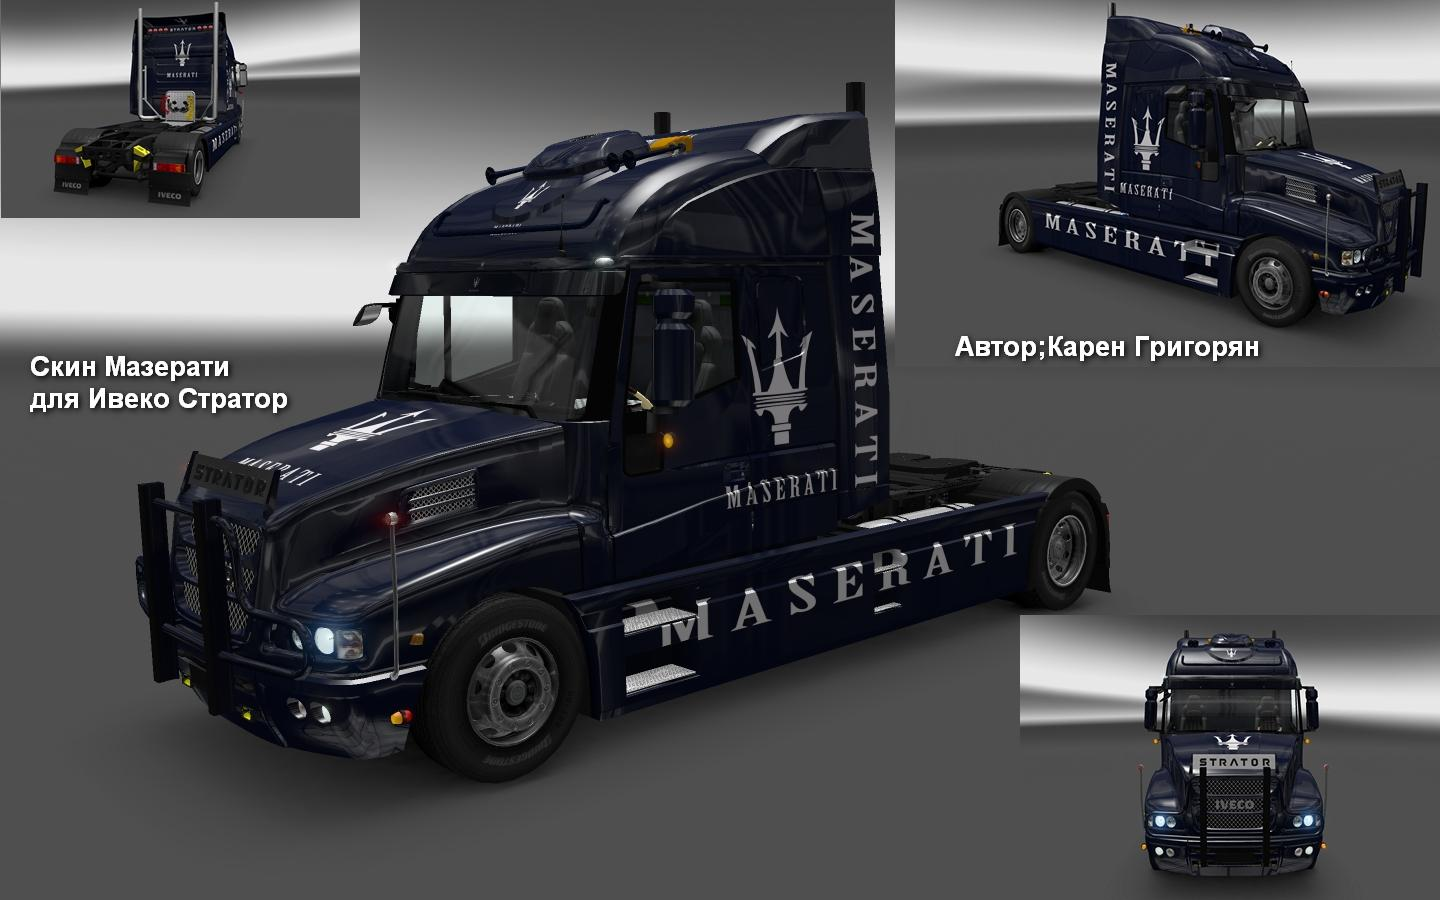 Iveco strator and volvo fh 2013 tuning euro truck simulator 2 mods - Iveco Strator Maserati V2 Skin Pack 1 22 Ets 2 Mods